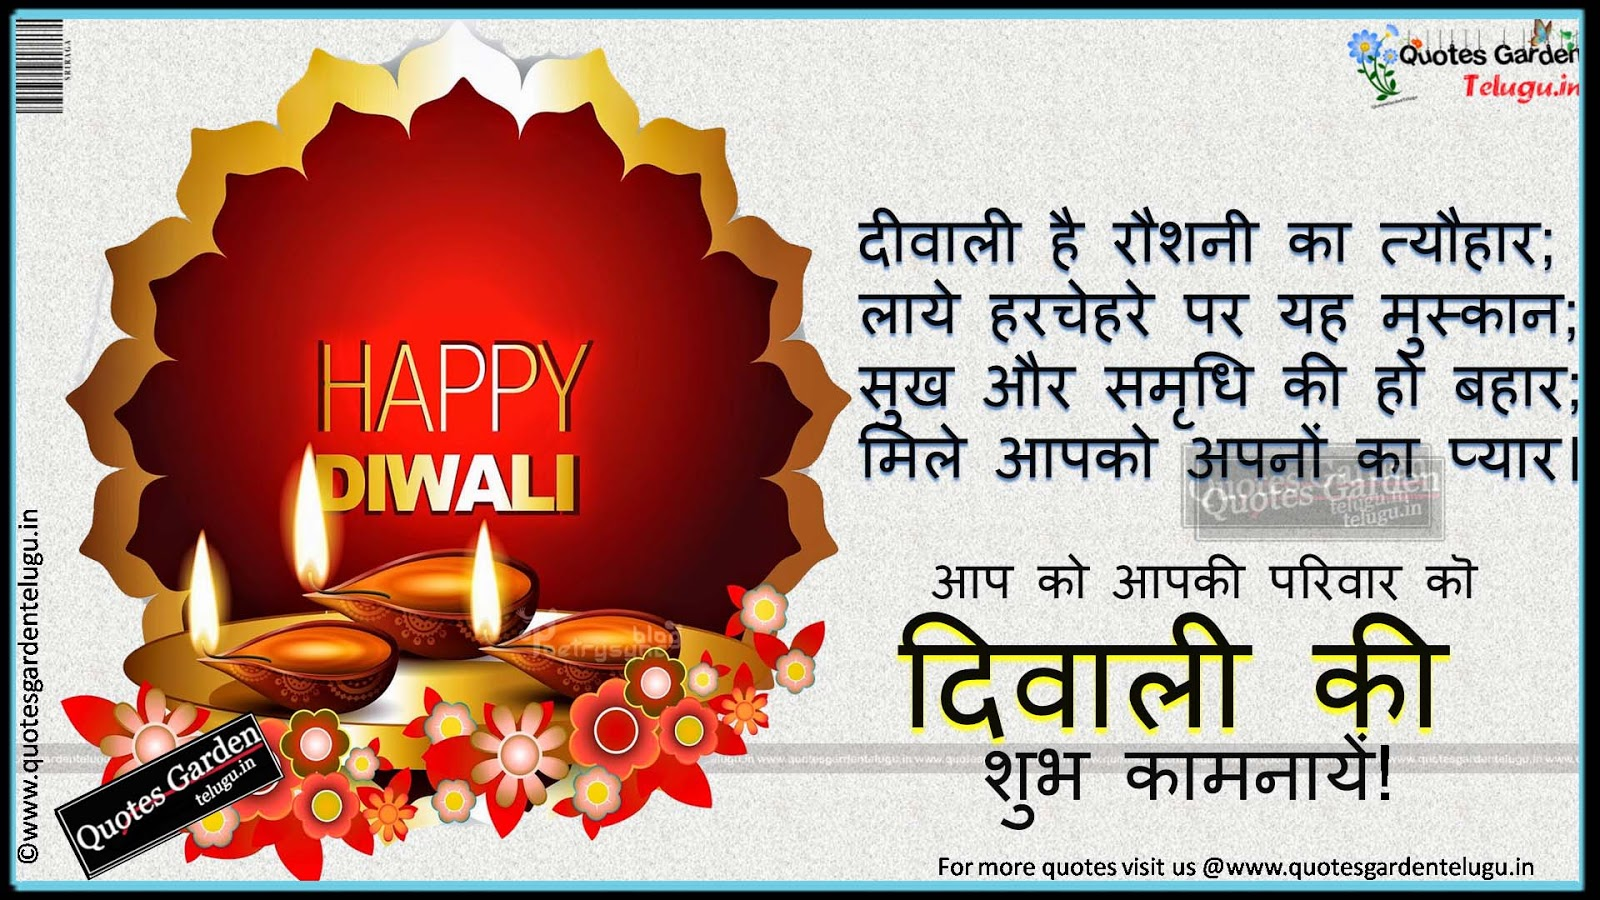 Happy Diwali Greetings Quotes Wallpapers In Hindi Quotes Garden